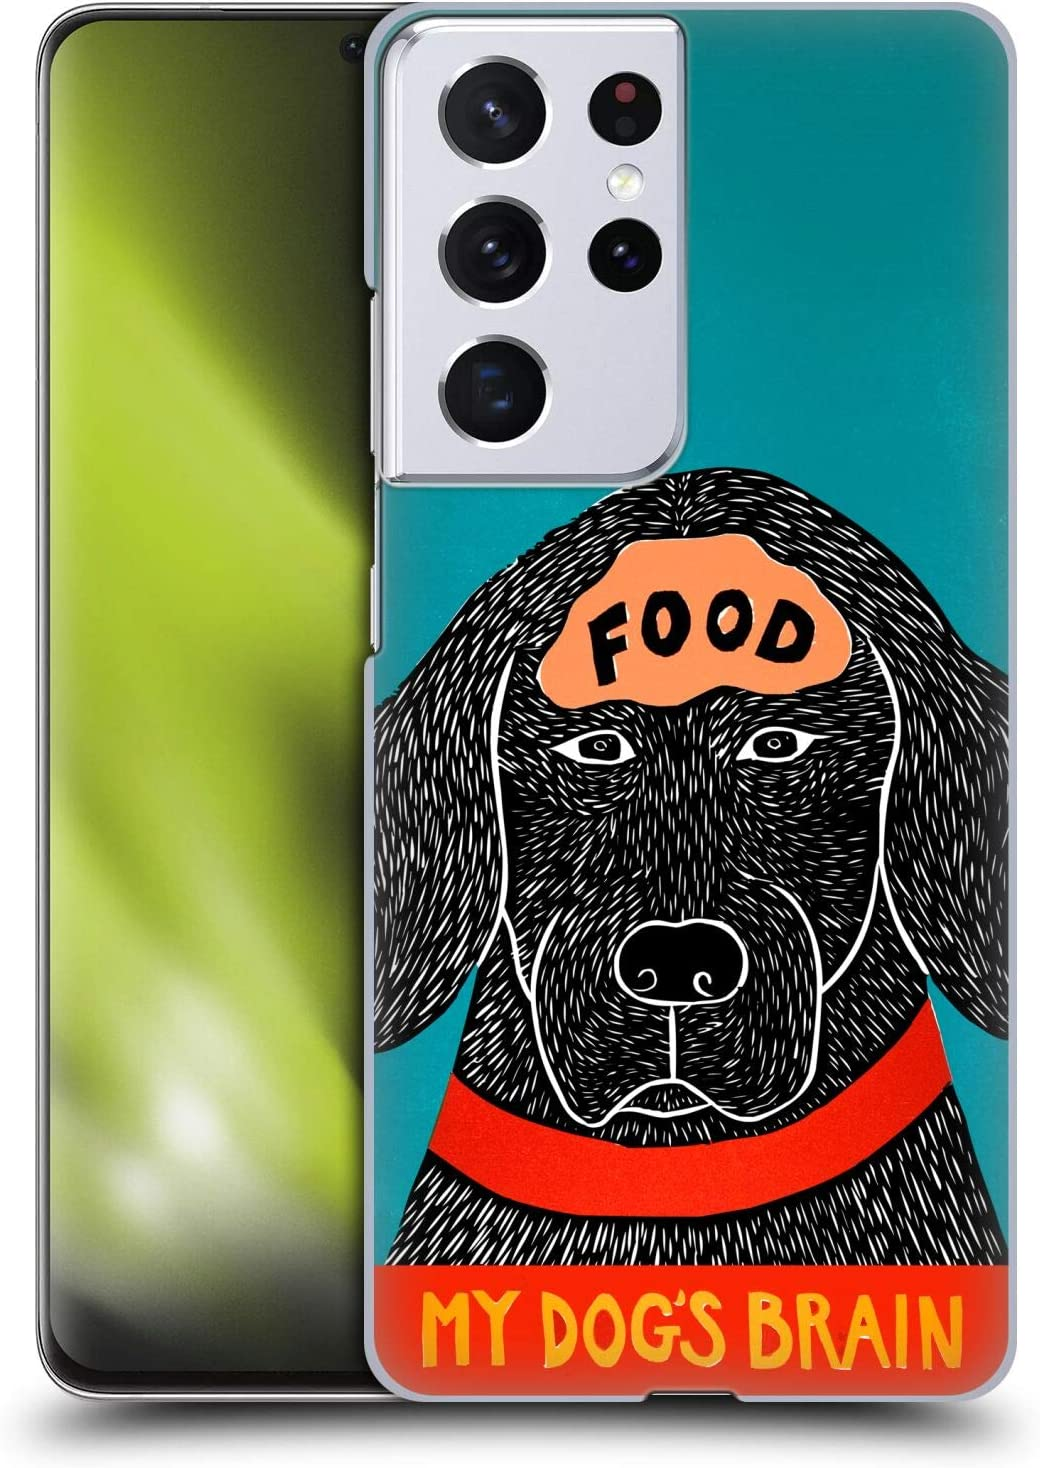 Head Case Designs Officially Licensed Stephen Huneck Dogs Brain Food Sally Humour Hard Back Case Compatible with Samsung Galaxy S21 Ultra 5G